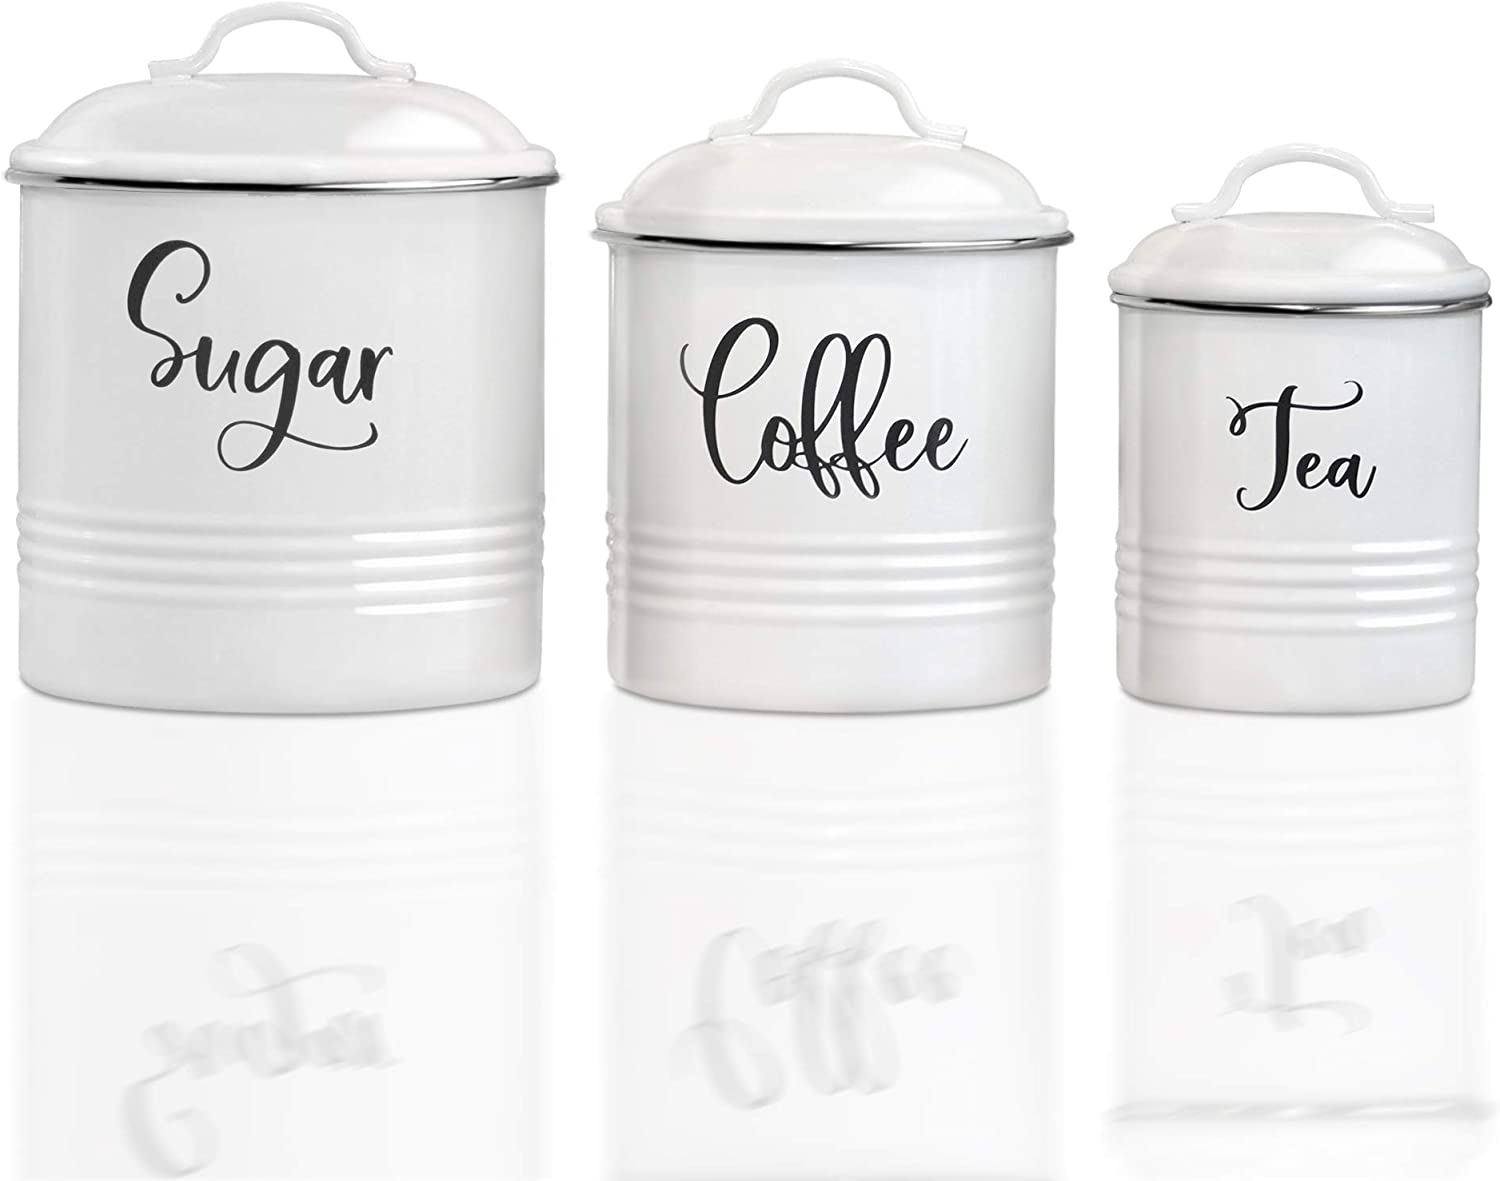 Canister Sets For Kitchen Counter-Modern Farmhouse Kitchen Decor-Rustic Kitchen Canisters Set of 3-Farmhouse Canisters sets for the Kitchen-White Airtight Food Storage for Coffee, Sugar, Tea and More